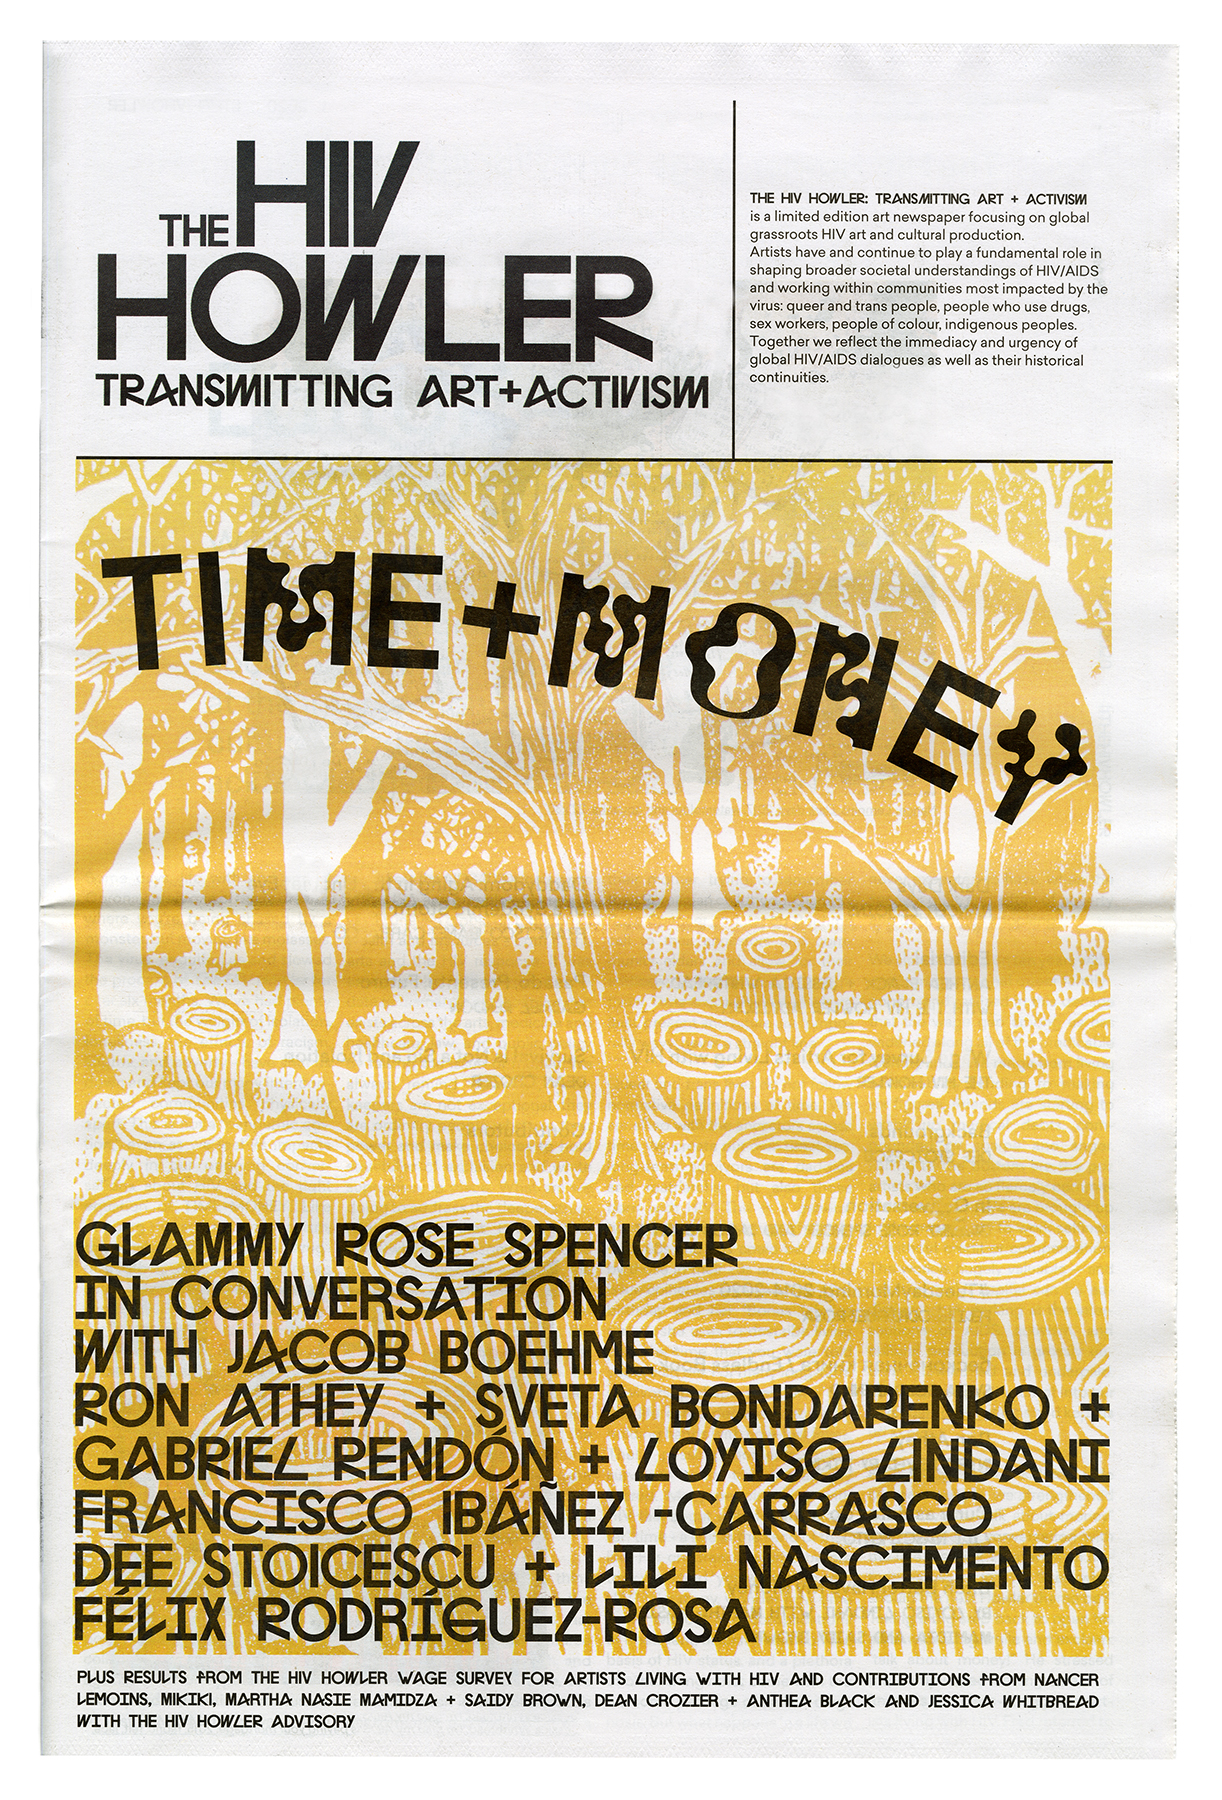 The front page of the artist newspaper The HIV Howler: Transmitting Art and Activism shows the HIV Howler in large black block letters, and the issue title TIME+MONEY, hovering over a yellow monotone image of a drawing of a forest, by artist Glammy Rose Spencer. Contributors names are listed on the bottom half page of the cover in a black typeface: Glammy Rose Spencer in conversation with Jacob Boehme, Ron Athey, Sveta Bondarenko, Gabriel Rendon, Loyiso Lindani, Francisco Ibanez-Carrasco, Dee Stoicescu, Lili Nascimento and Felix Rodriguez-Rosa, Plus results from the HIV Howler wage survey for Artists Living with HIV, and contributions from Nancer Lemoins, Mikiki, Martha Nasie Mamidza and Saidy Brown, Dean Croizer, and Anthea Black and Jessica Whitbread with the HIV Howler Advisory.